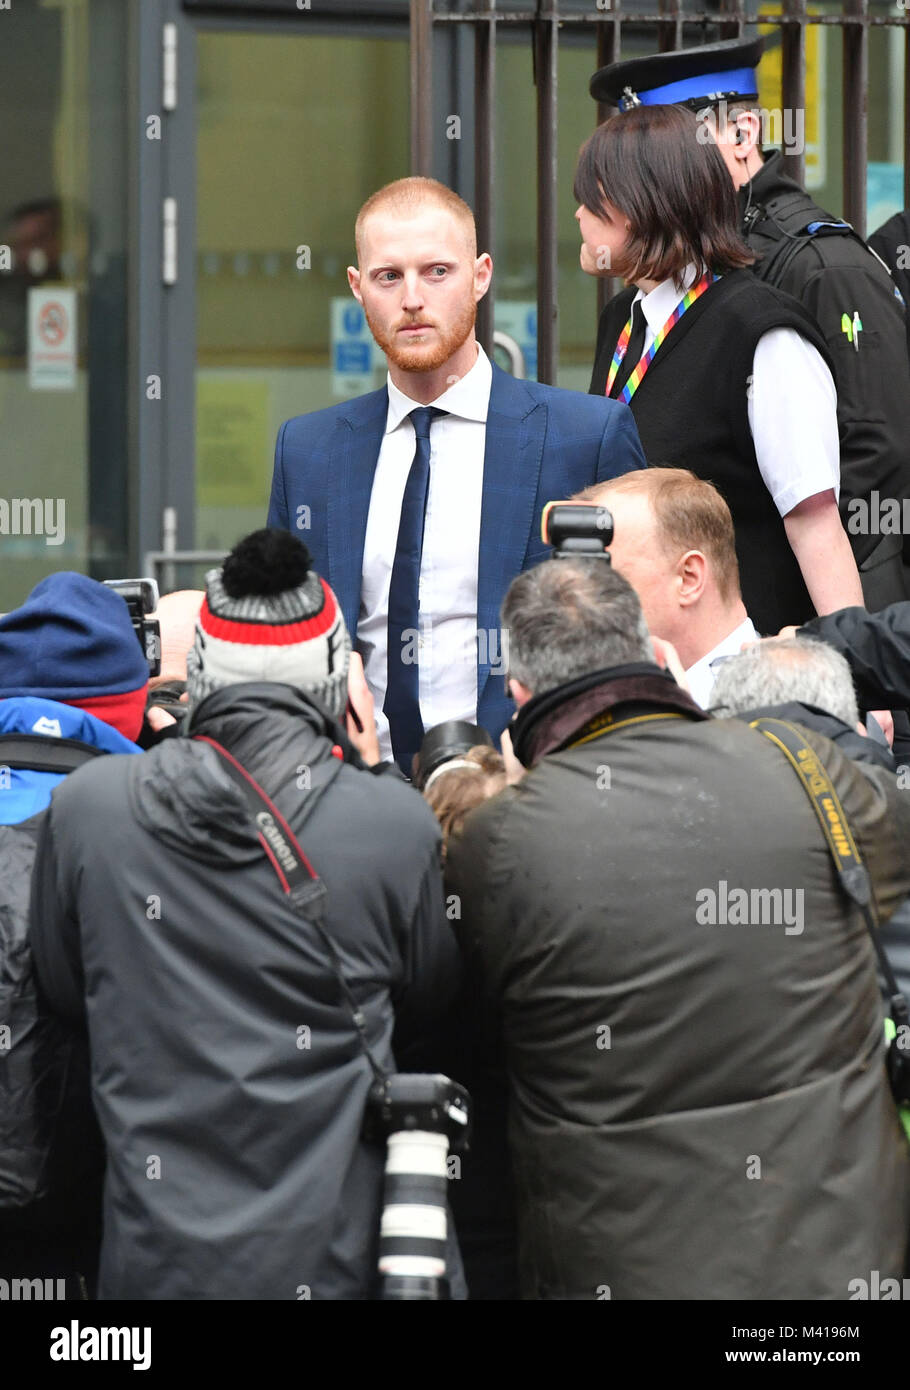 England and Durham cricketer Ben Stokes, 26, leaving Bristol Magistrates' Court, where he was told he will face - Stock Image